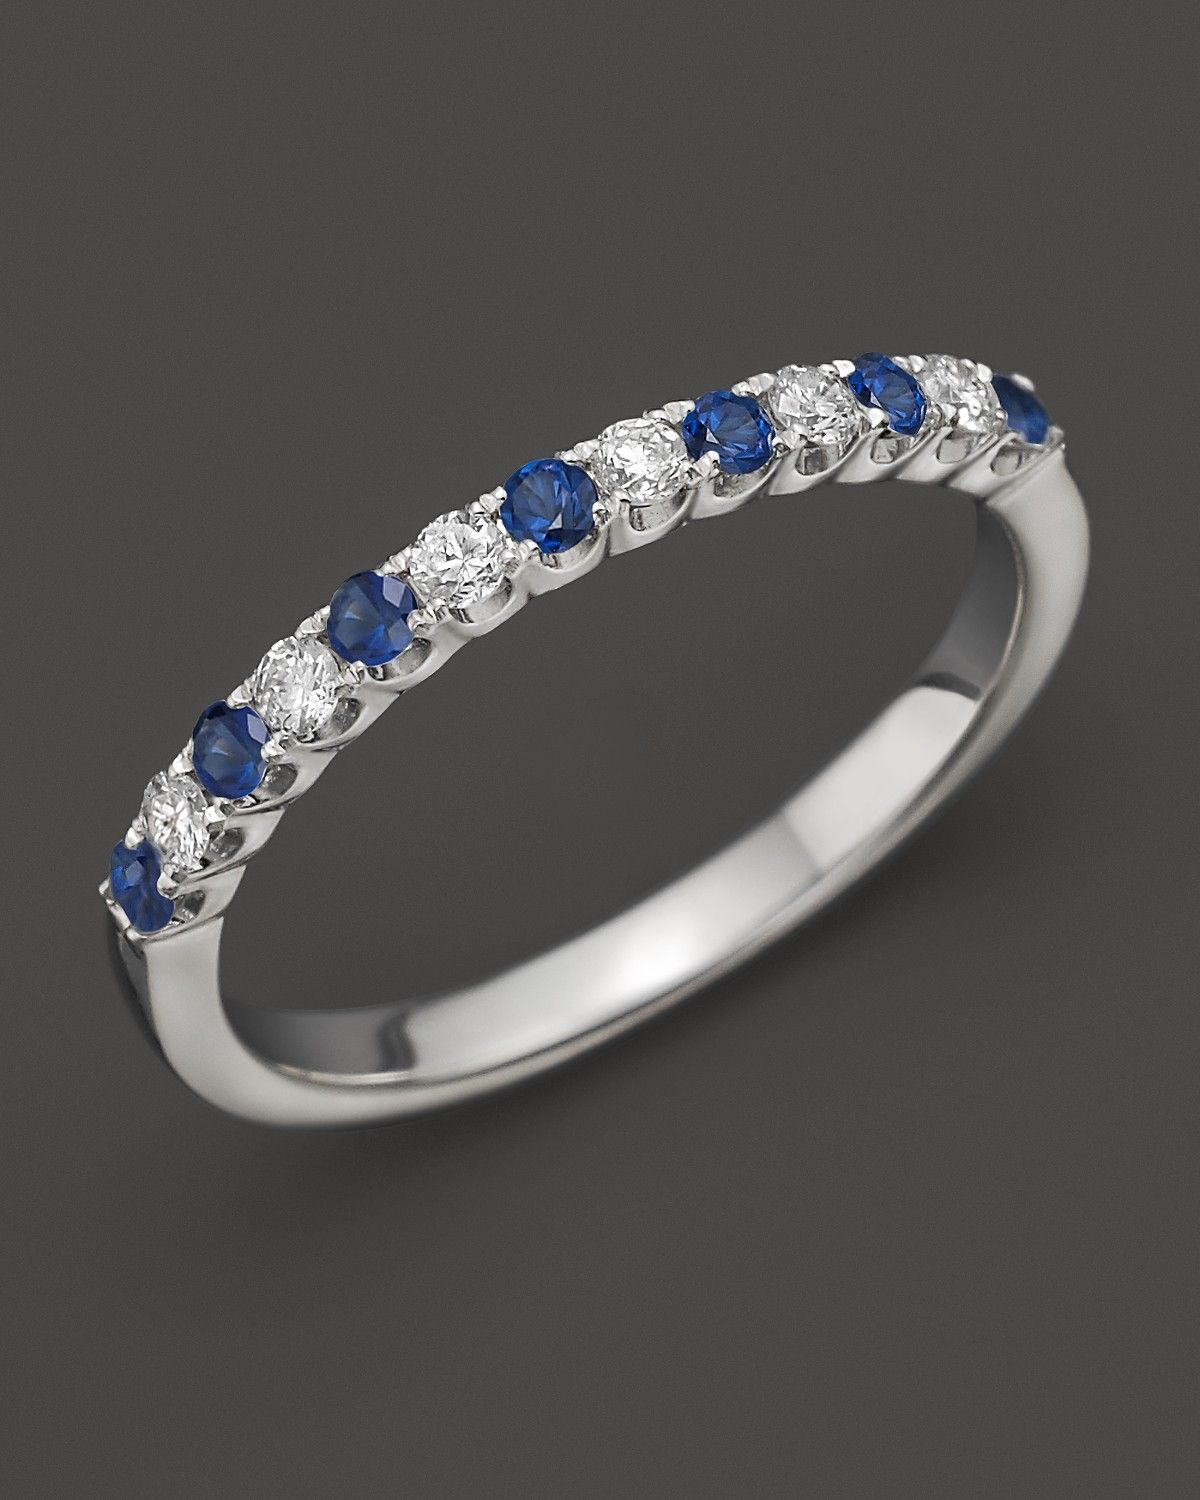 43a4b7092277 Diamond and Sapphire Band in 14K White Gold